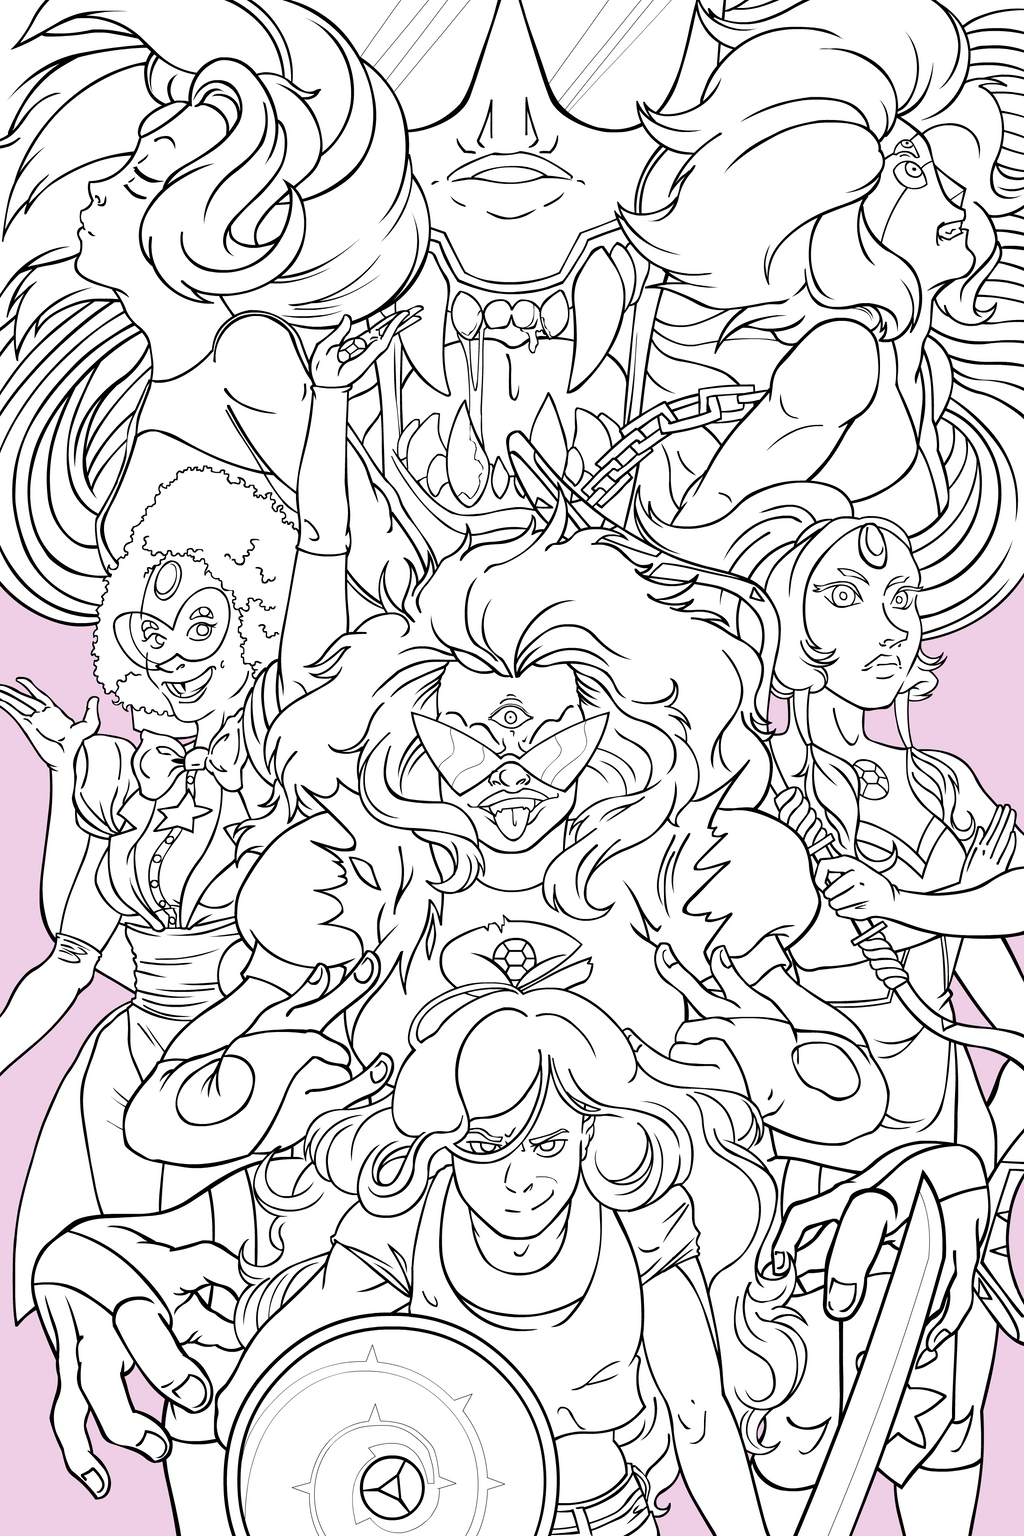 Coloring pages universe -  Steven Universe Gem Fusion Poster Inks By Empty Brooke